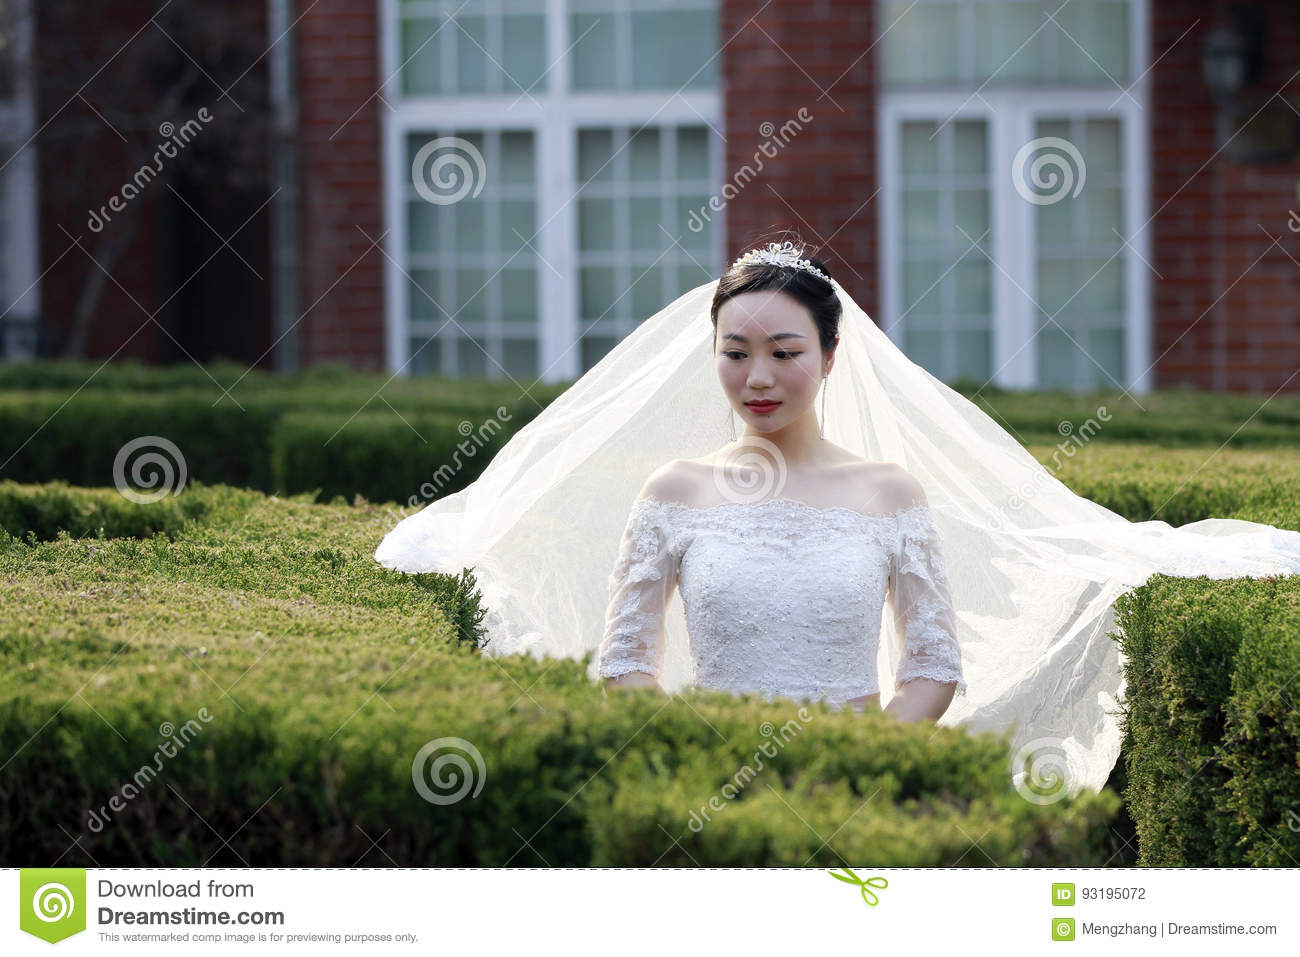 Sorry, can asian girl wedding dress reply)))